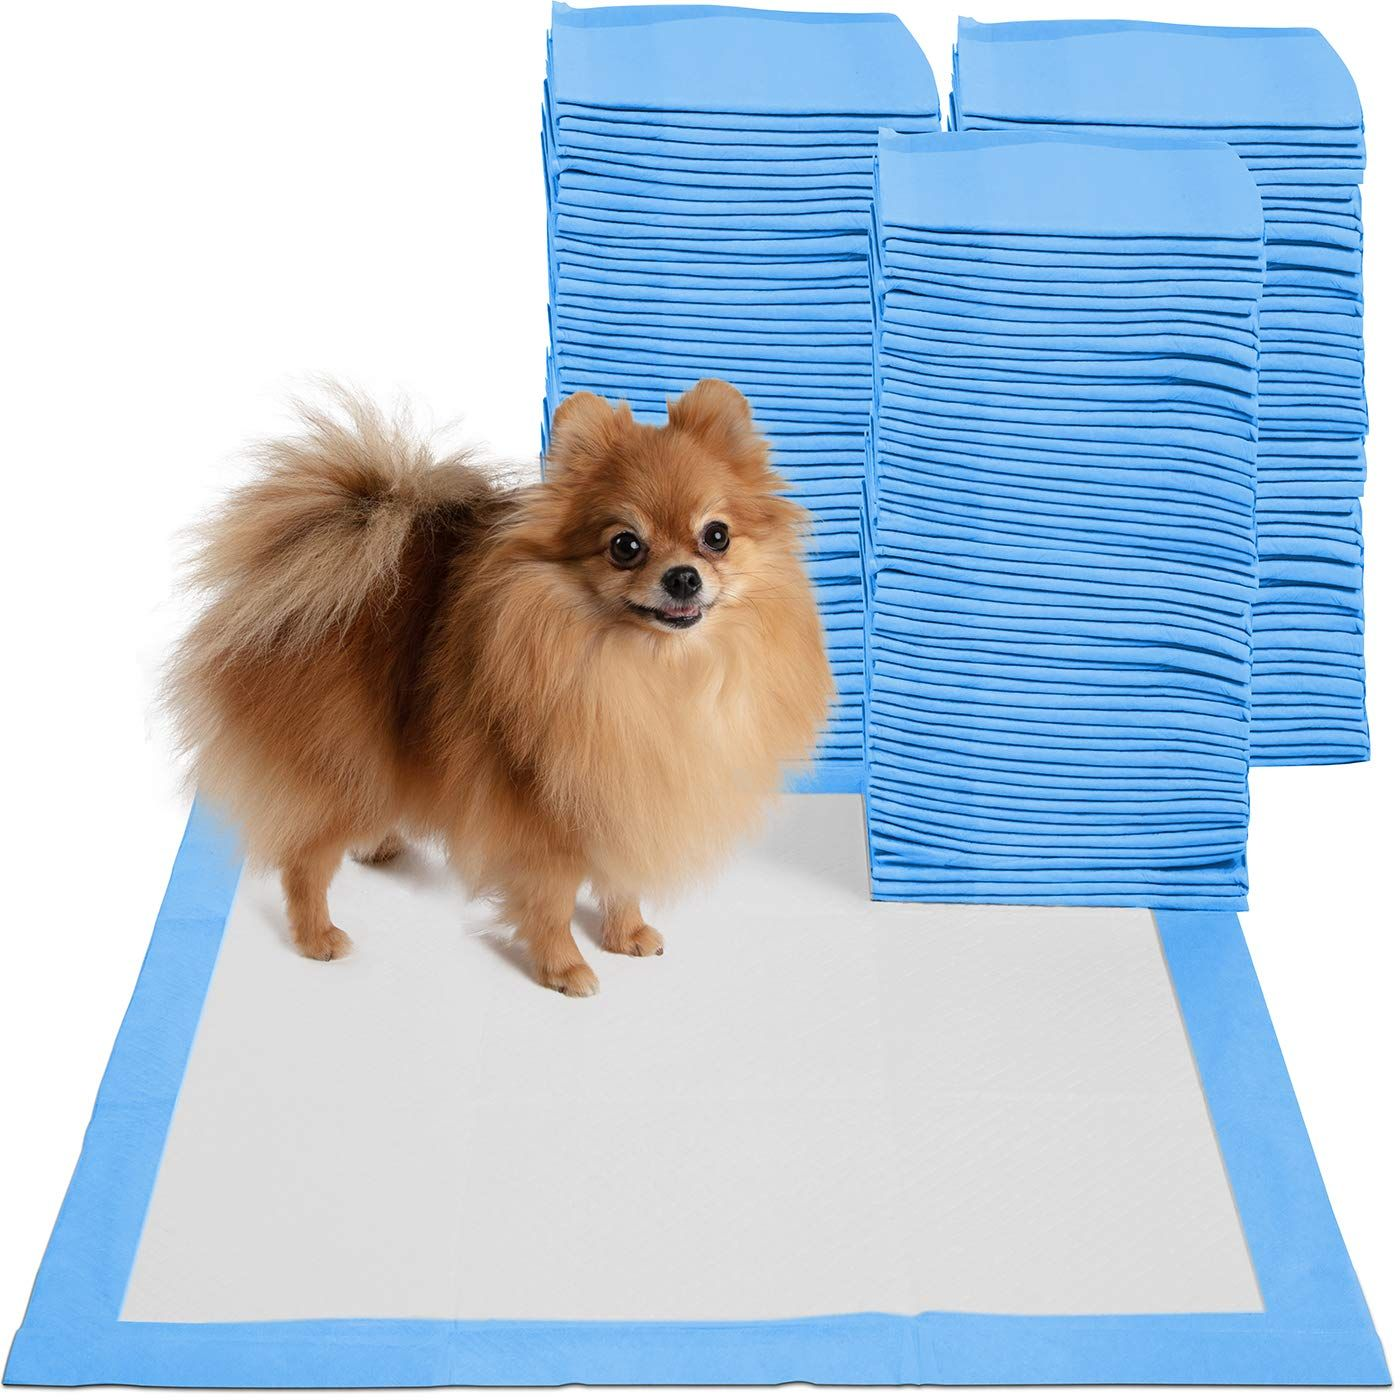 Puppy Pads Dog Pee Pad For Potty Training Dogs Puppy Pads Dog